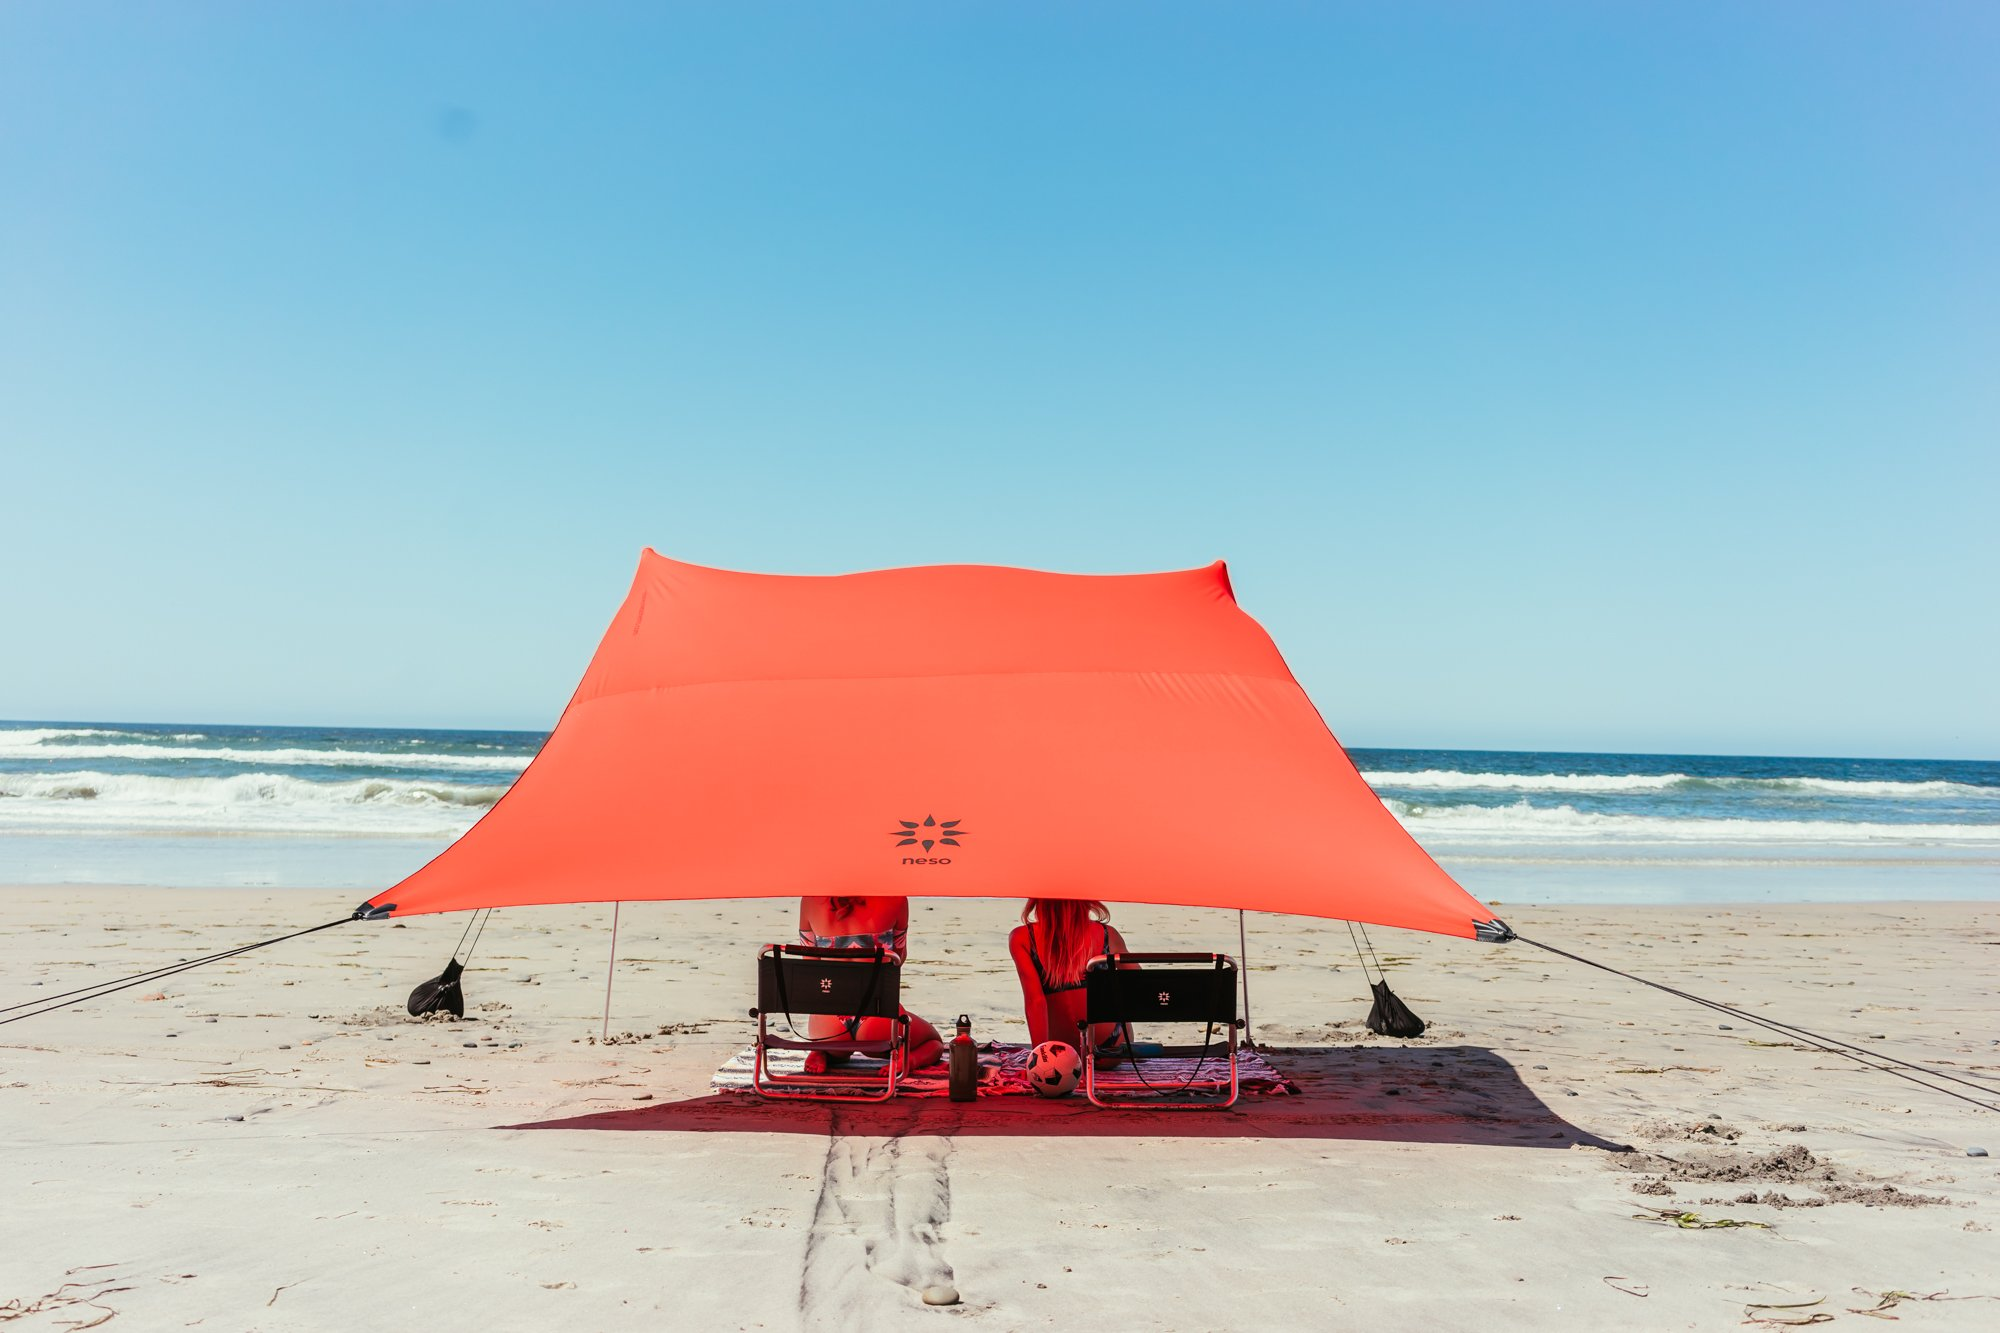 Neso Tents Grande Beach Tent, 7ft Tall, 9 x 9ft, Reinforced Corners and Cooler Pocket(Lehua Red) by Neso